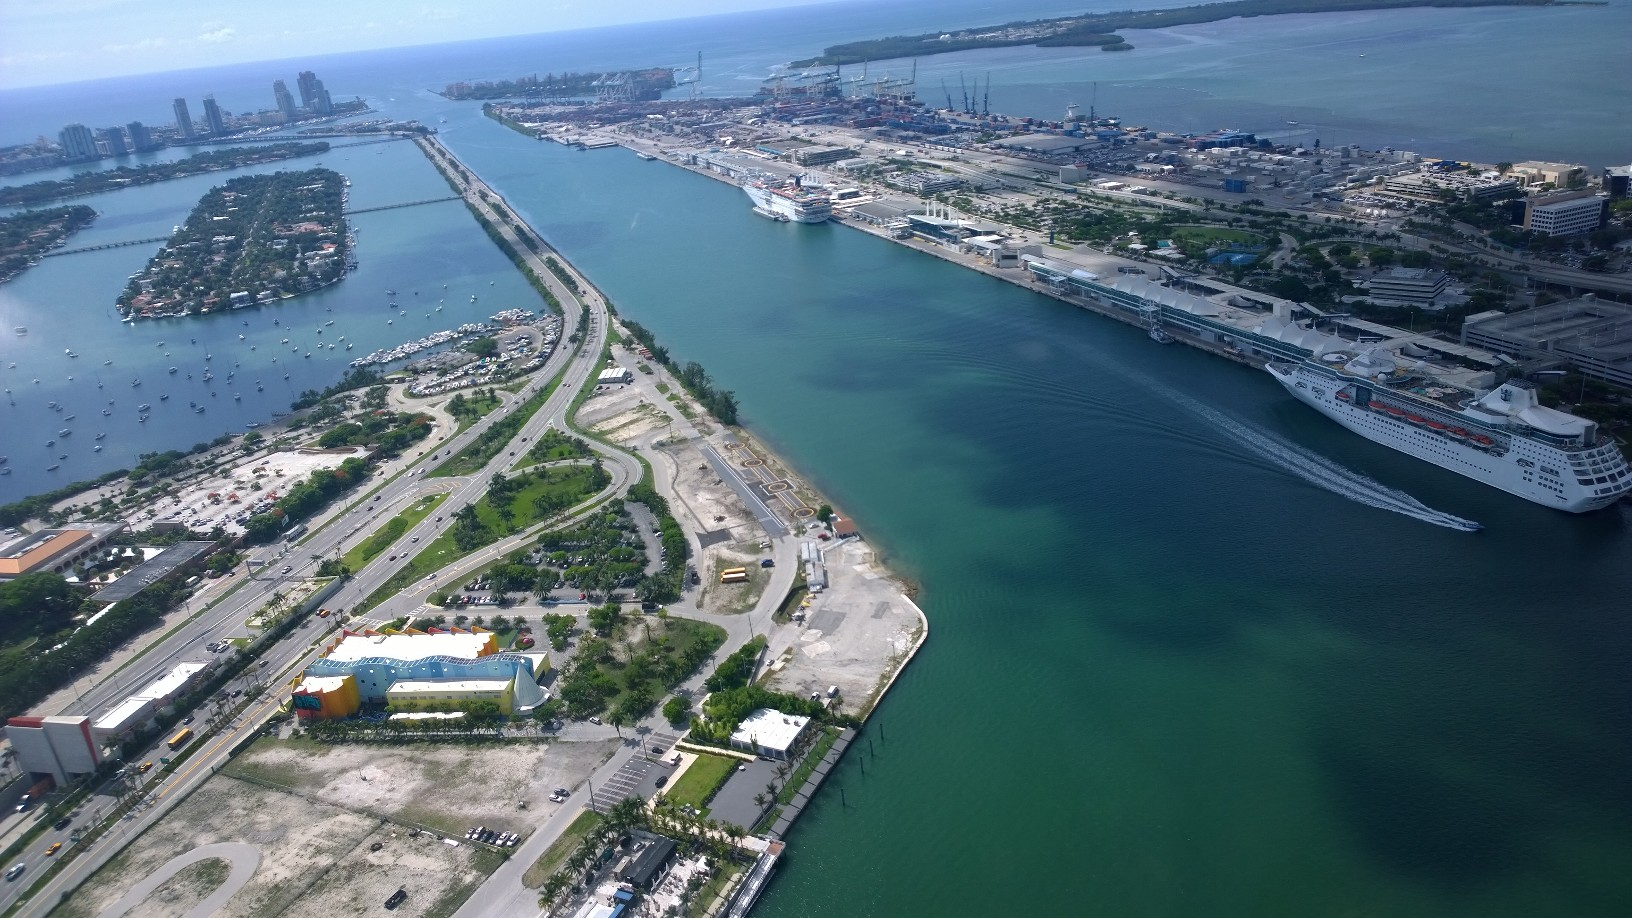 Miami Heliport Aerial Looking East